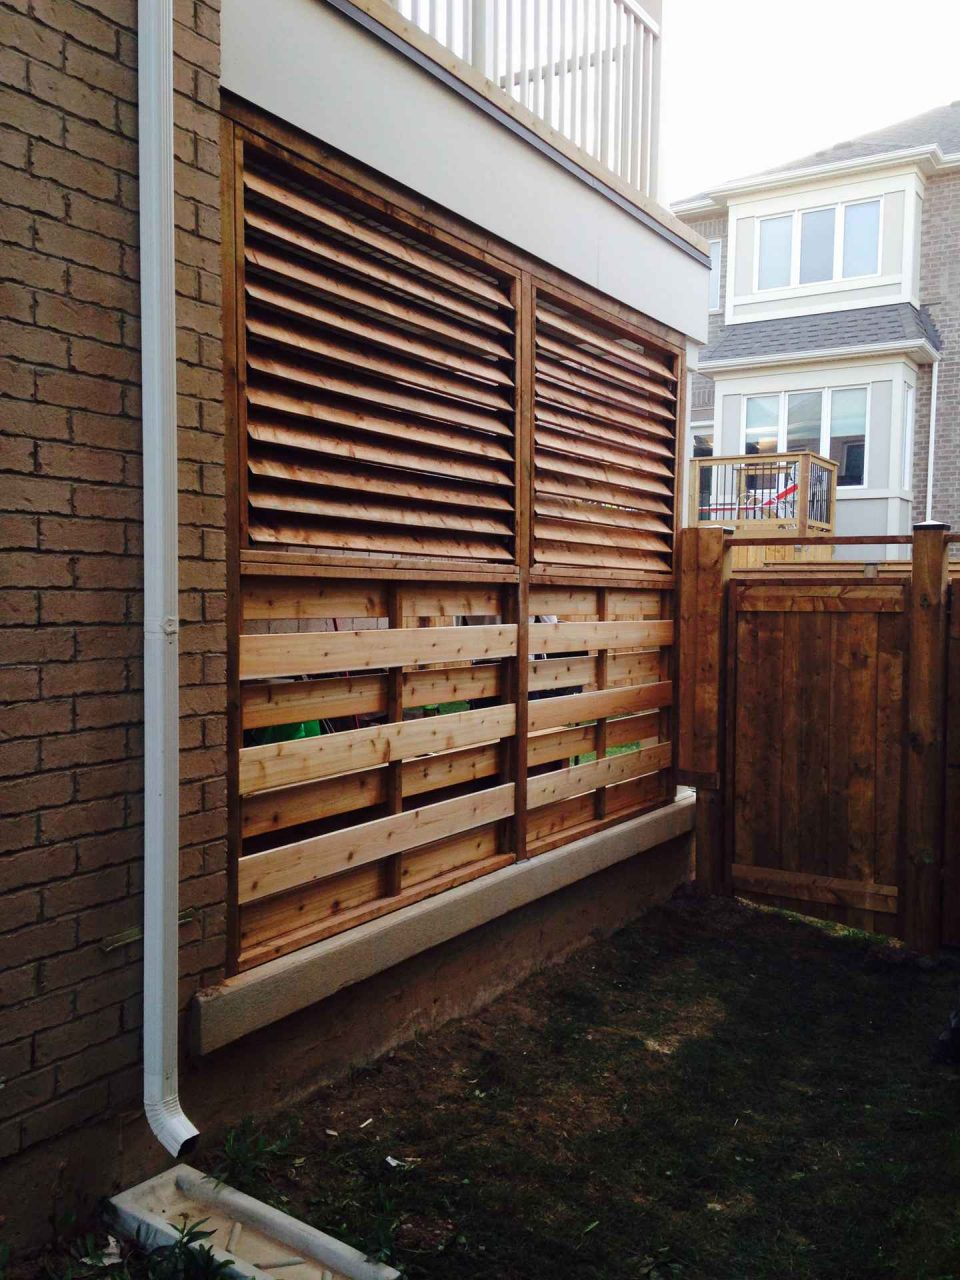 Other Louvered Applications Flexfence Louver System